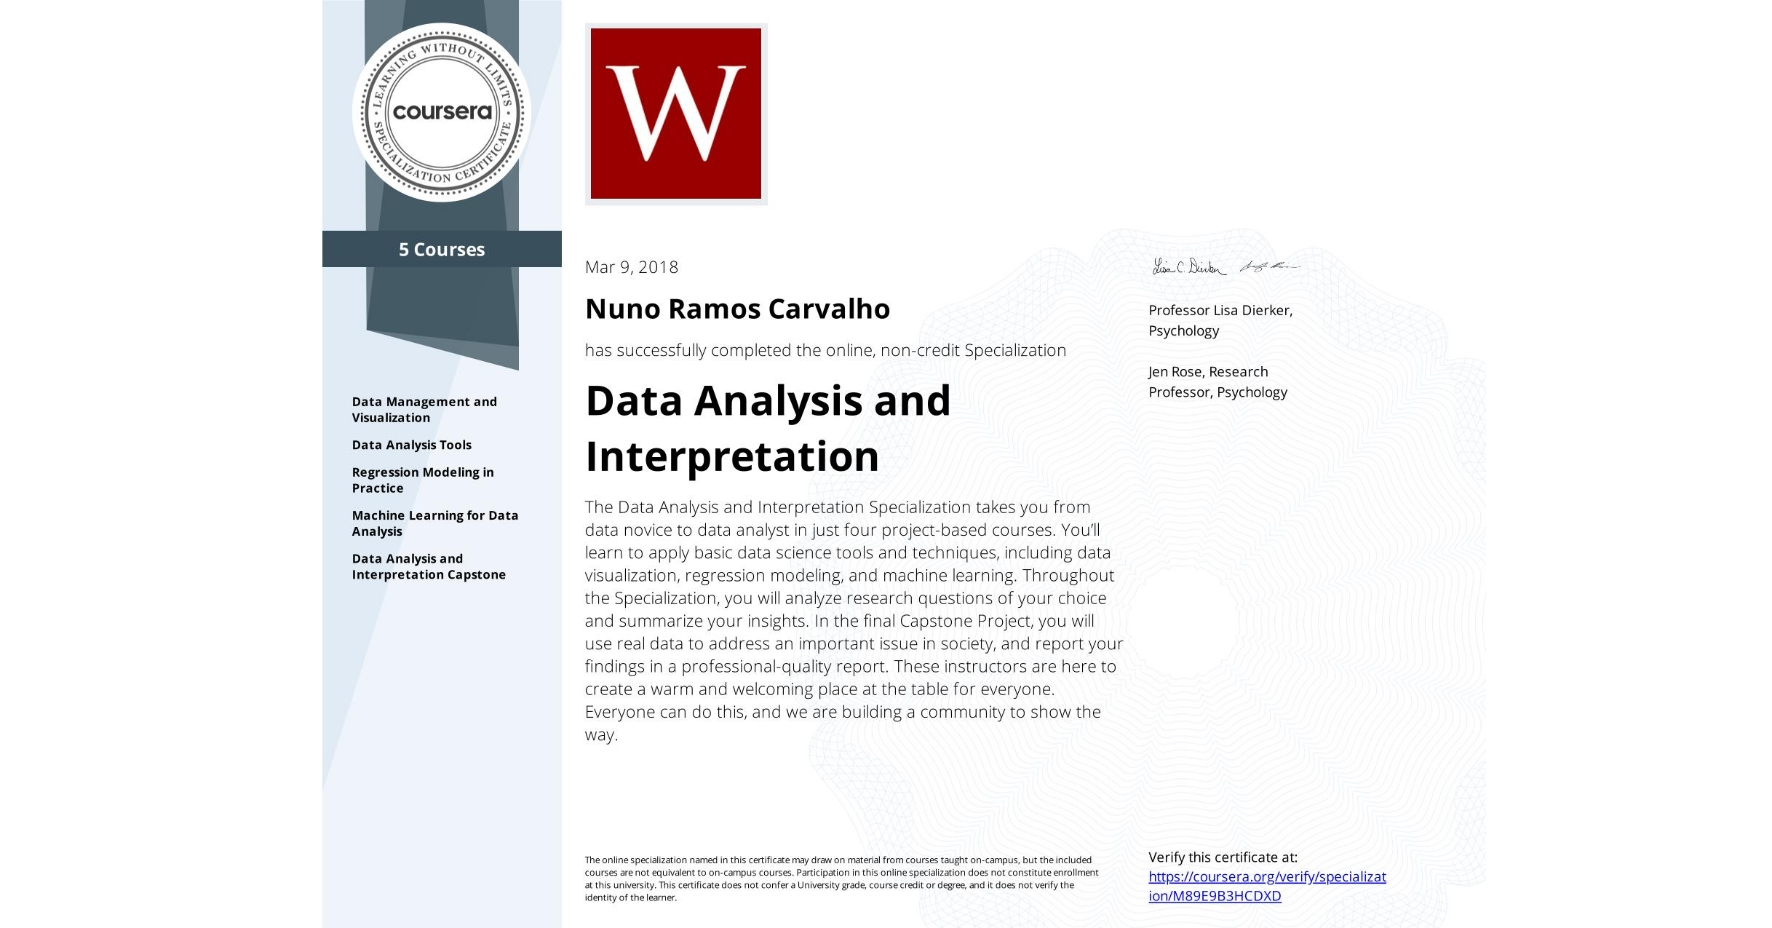 View certificate for Nuno Ramos Carvalho, Data Analysis and Interpretation, offered through Coursera. The Data Analysis and Interpretation Specialization takes you from data novice to data analyst in just four project-based courses. You'll learn to apply basic data science tools and techniques, including data visualization, regression modeling, and machine learning. Throughout the Specialization, you will analyze research questions of your choice and summarize your insights. In the final Capstone Project, you will use real data to address an important issue in society, and report your findings in a professional-quality report. These instructors are here to create a warm and welcoming place at the table for everyone. Everyone can do this, and we are building a community to show the way.